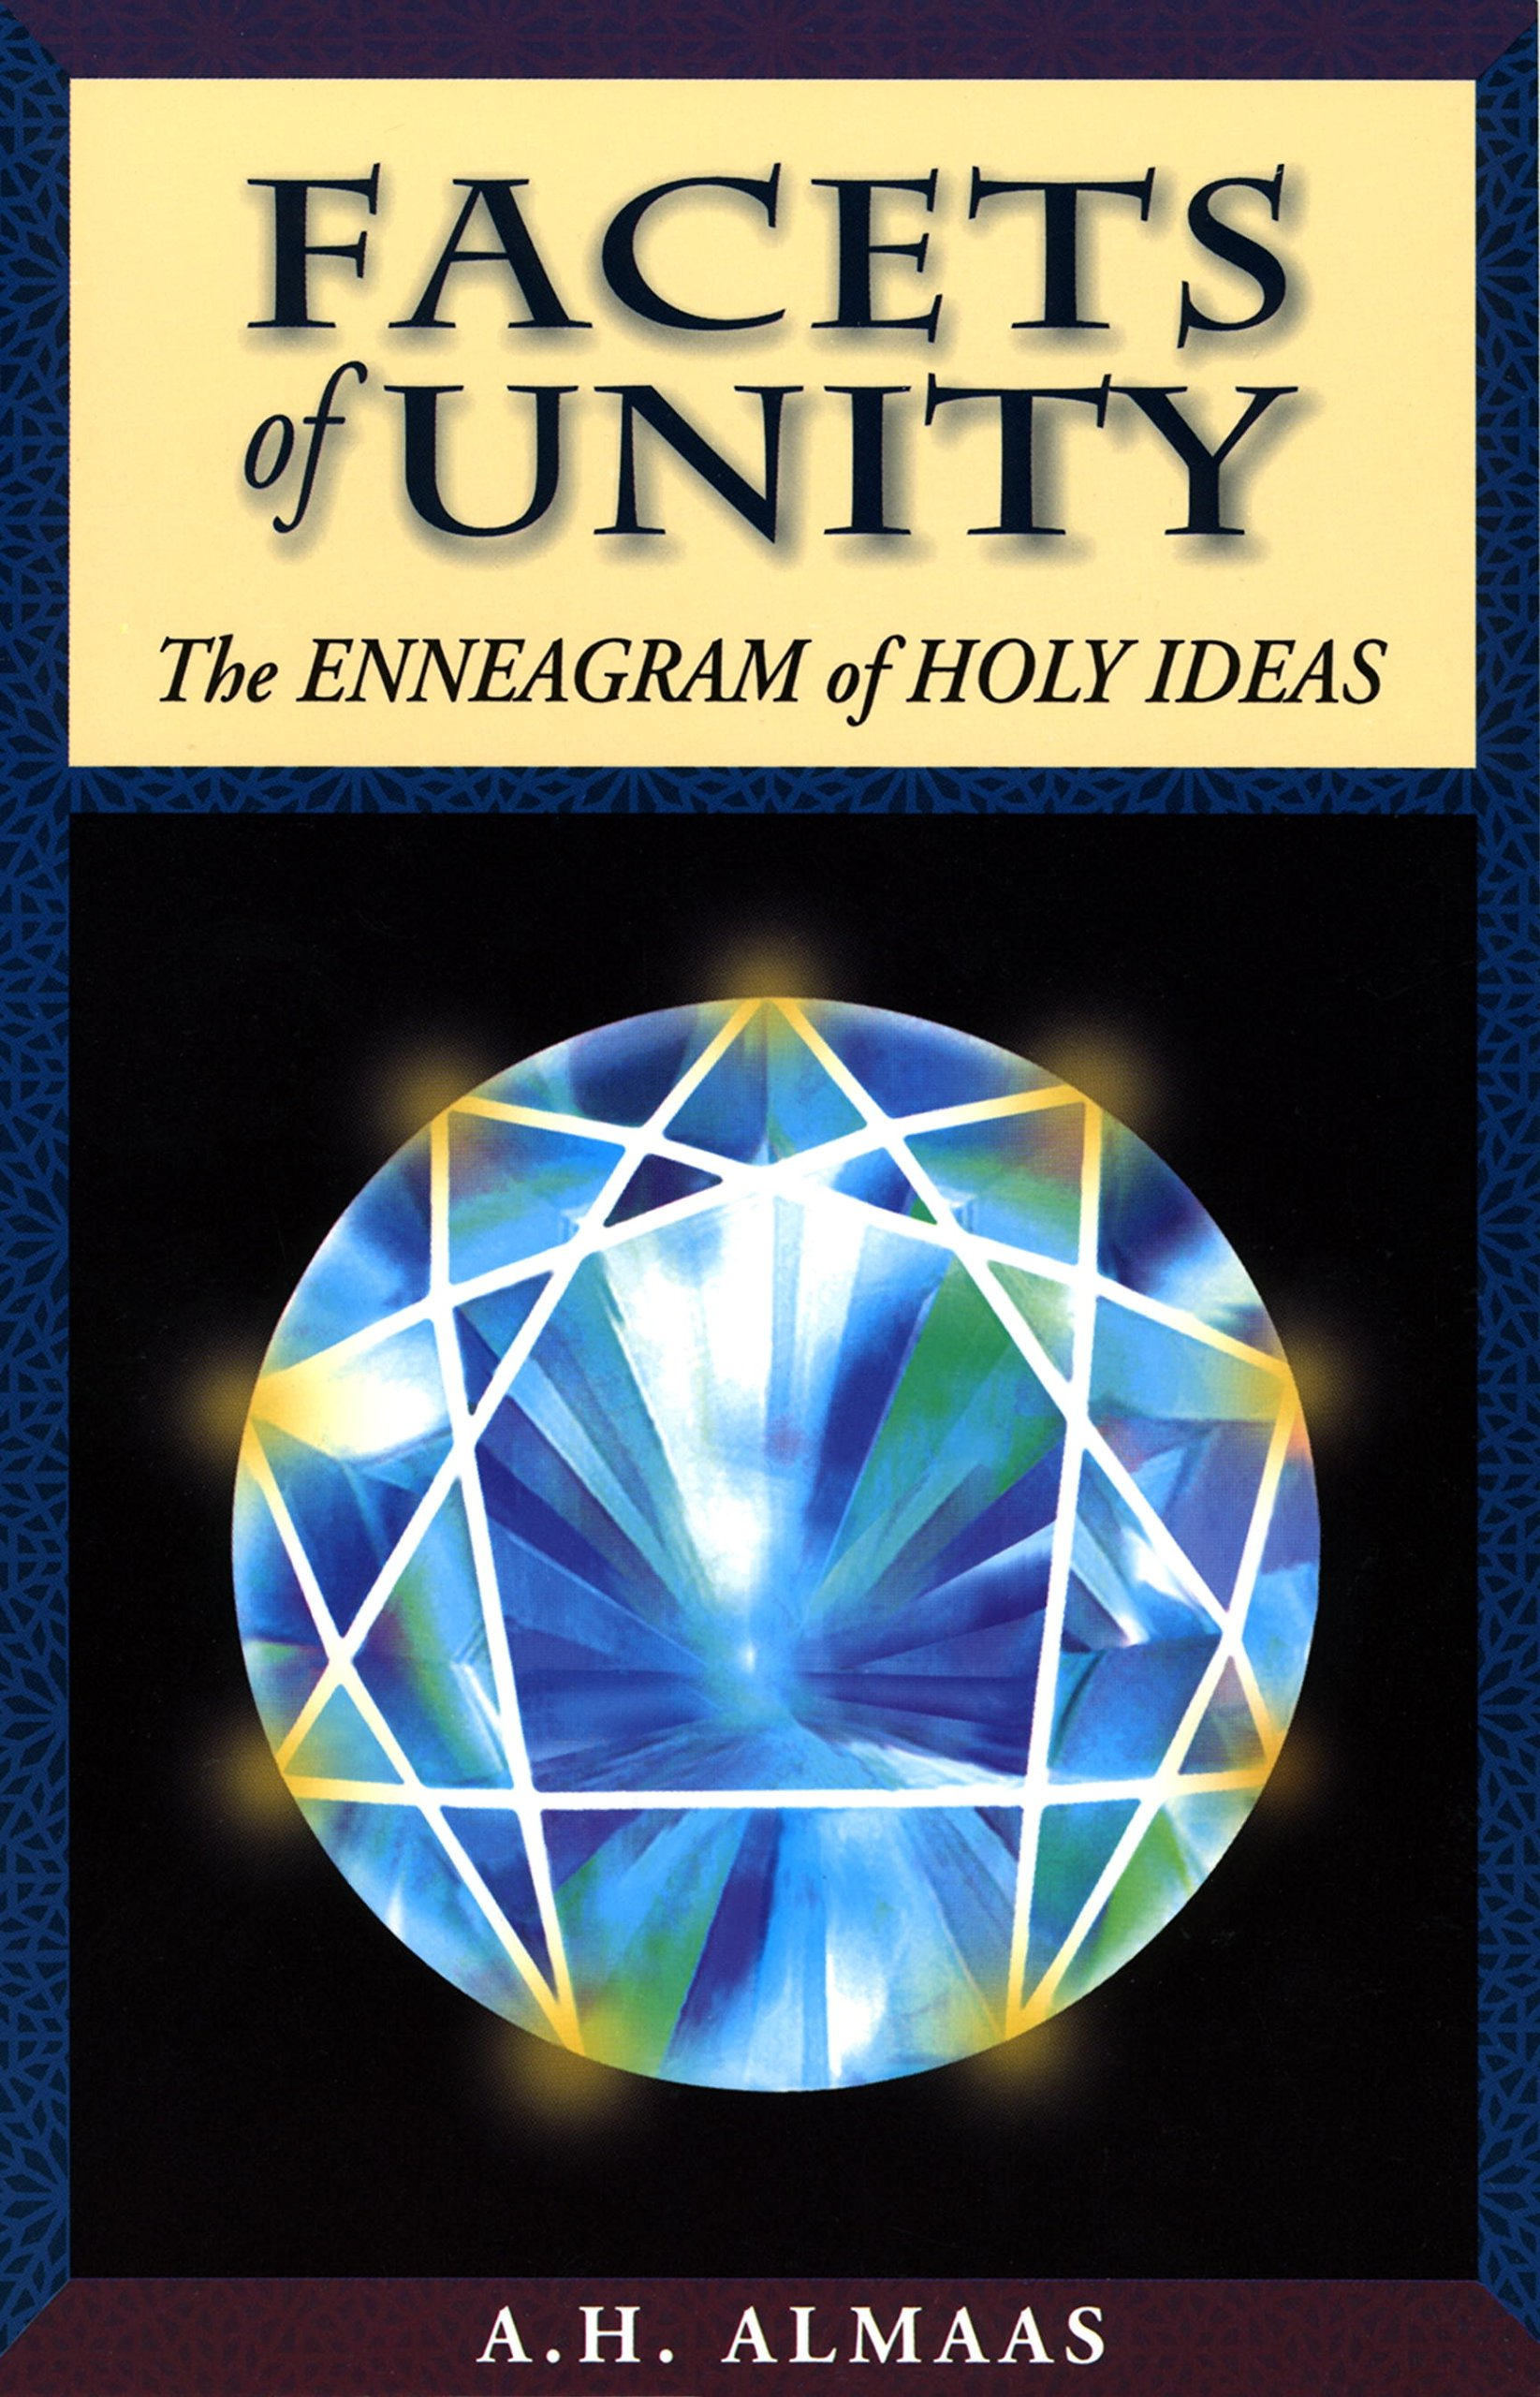 Image OfFacets Of Unity: The Enneagram Of Holy Ideas